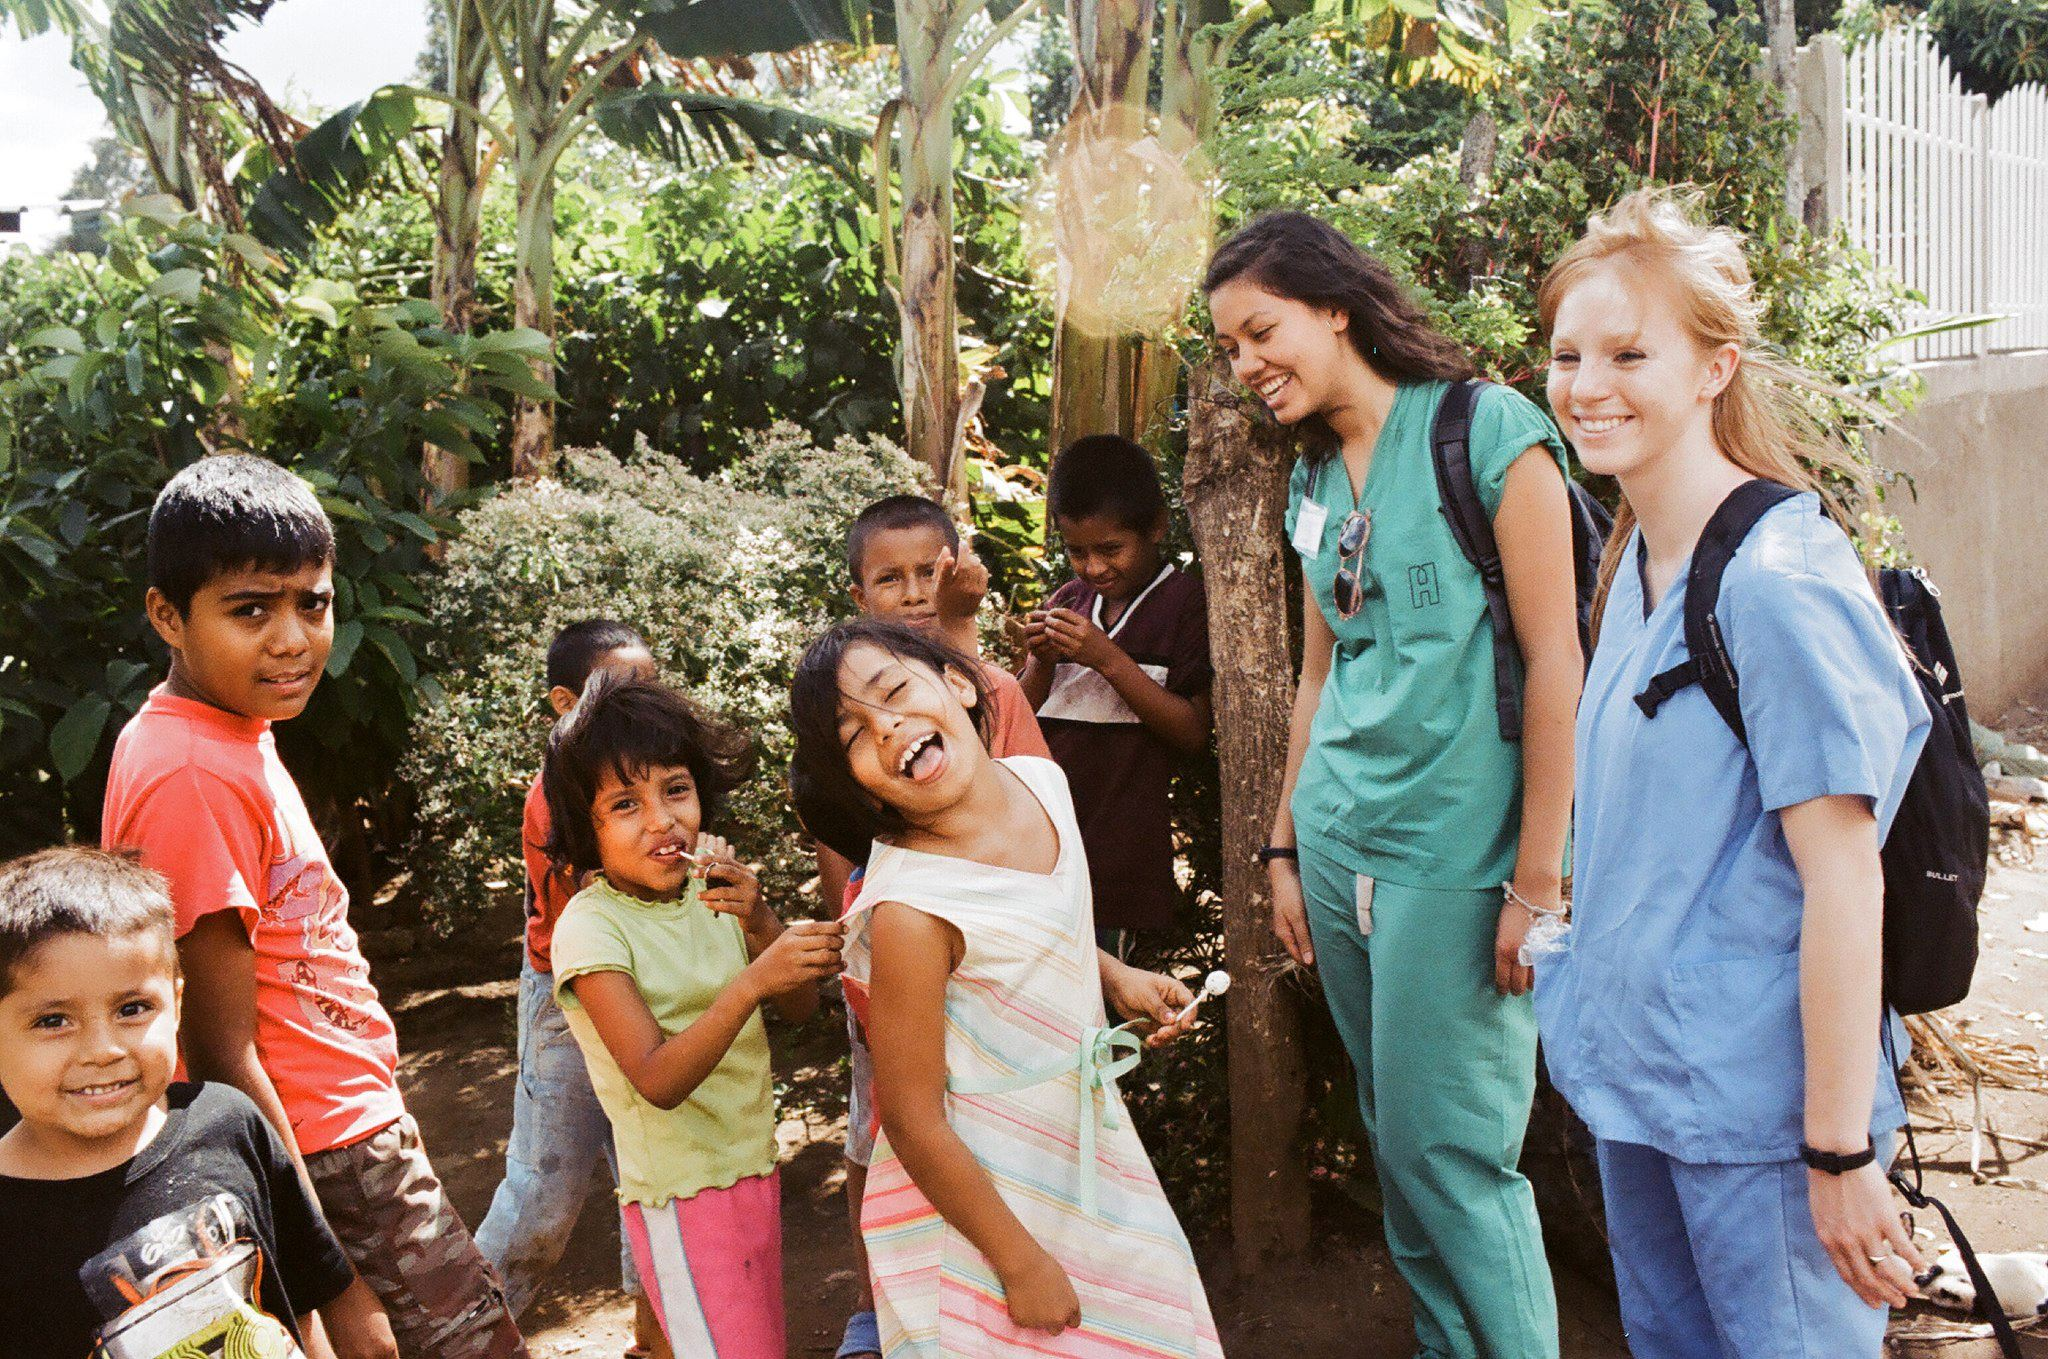 Christal Clemens - CRN122711GEN - Helping with free medical clinics in the rural areas. copy